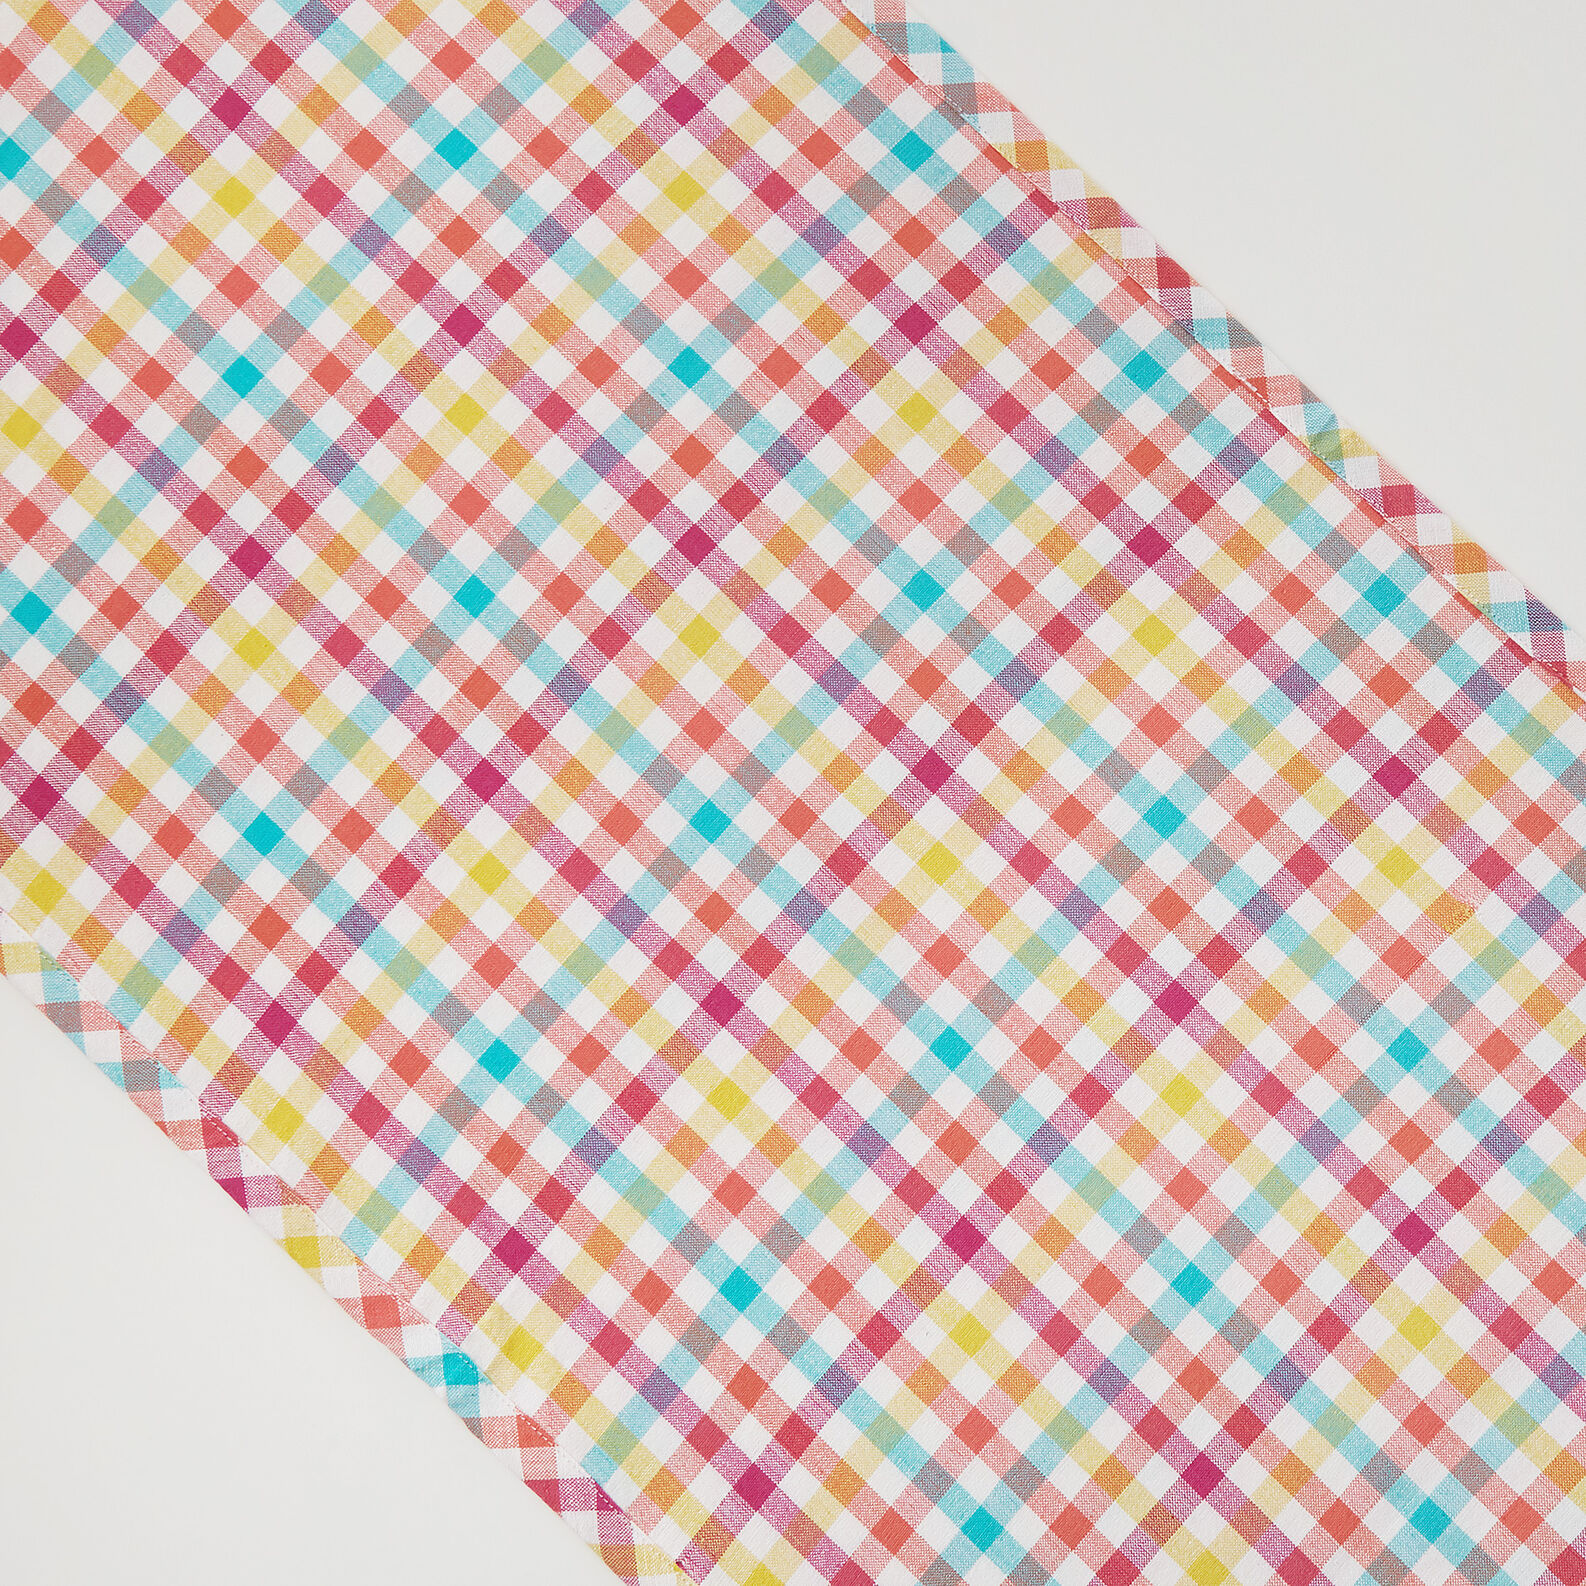 Yarn-dyed check table runner in 100% cotton